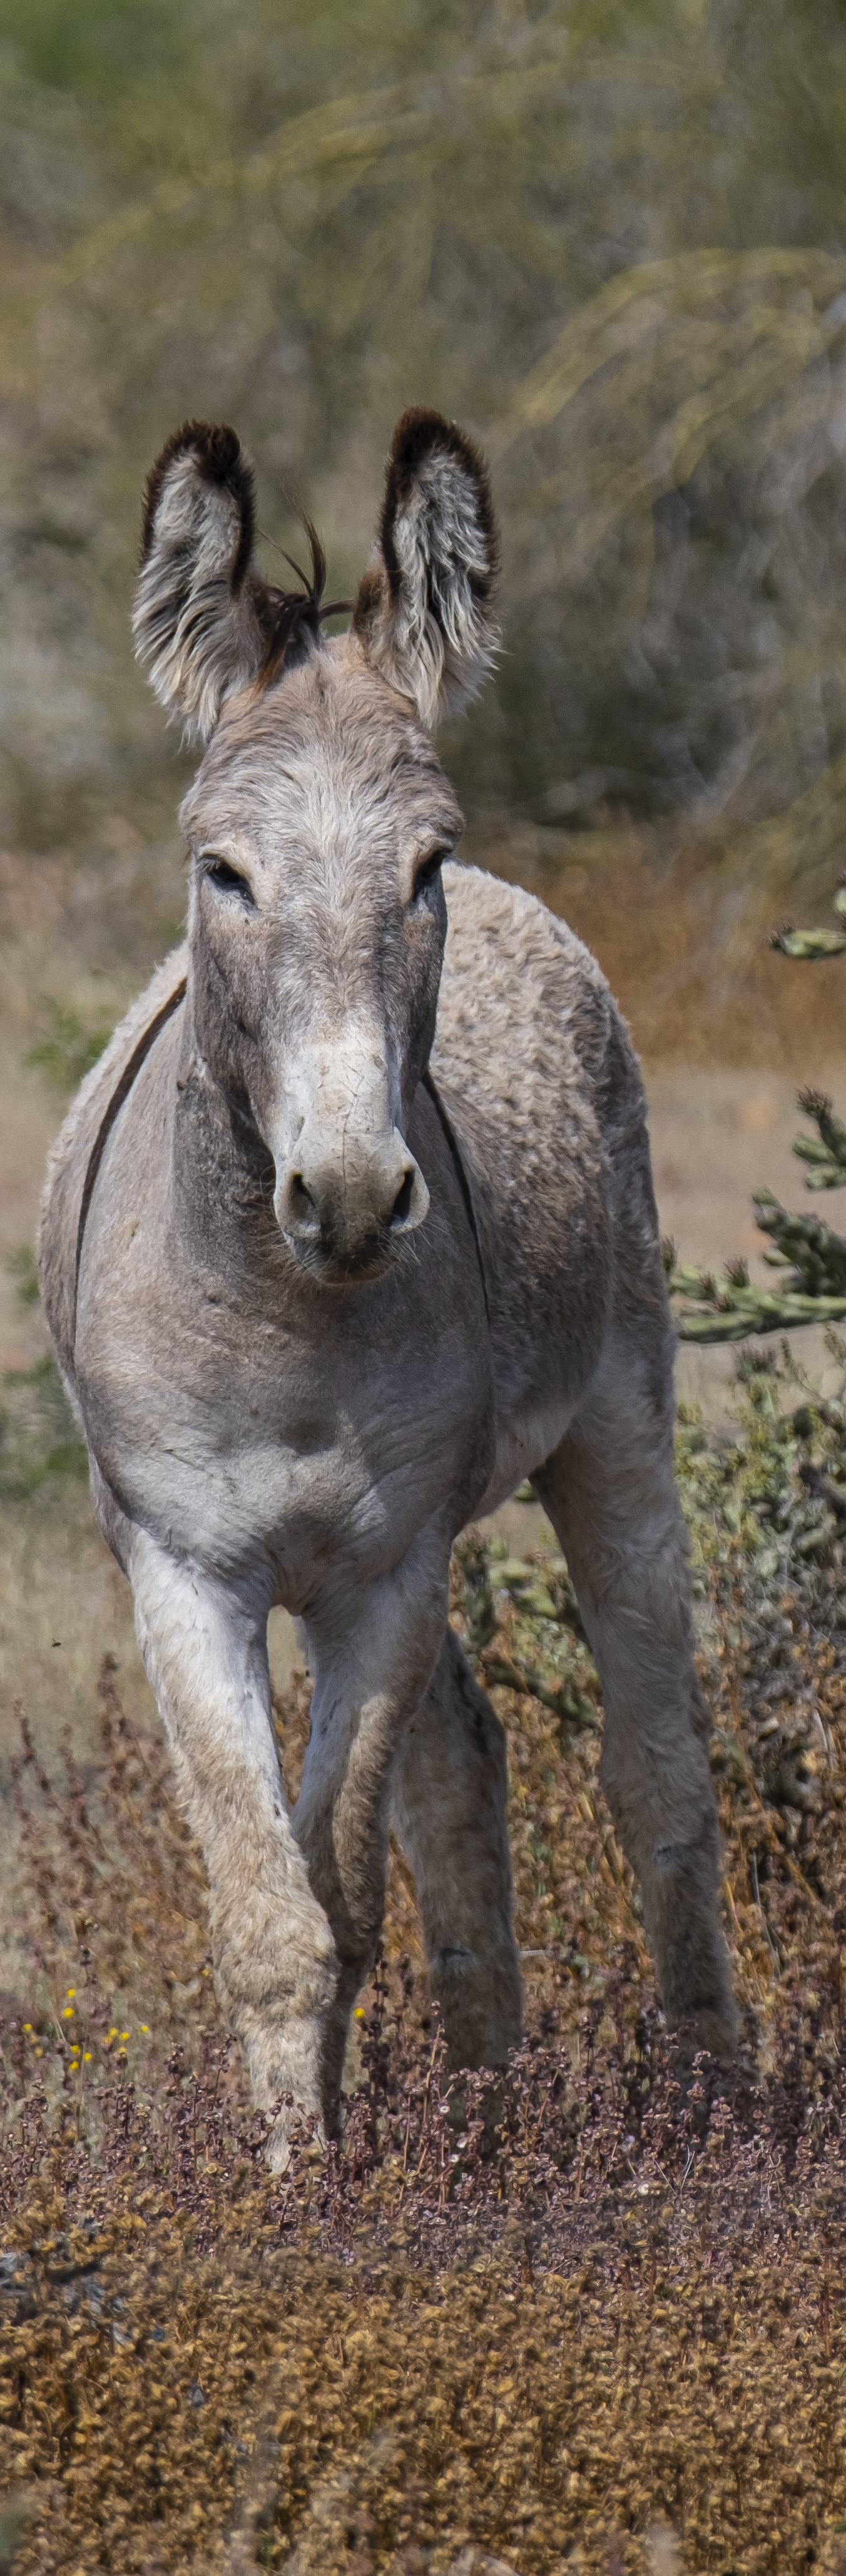 Arizona Adult Wild Burro, by Jim Green